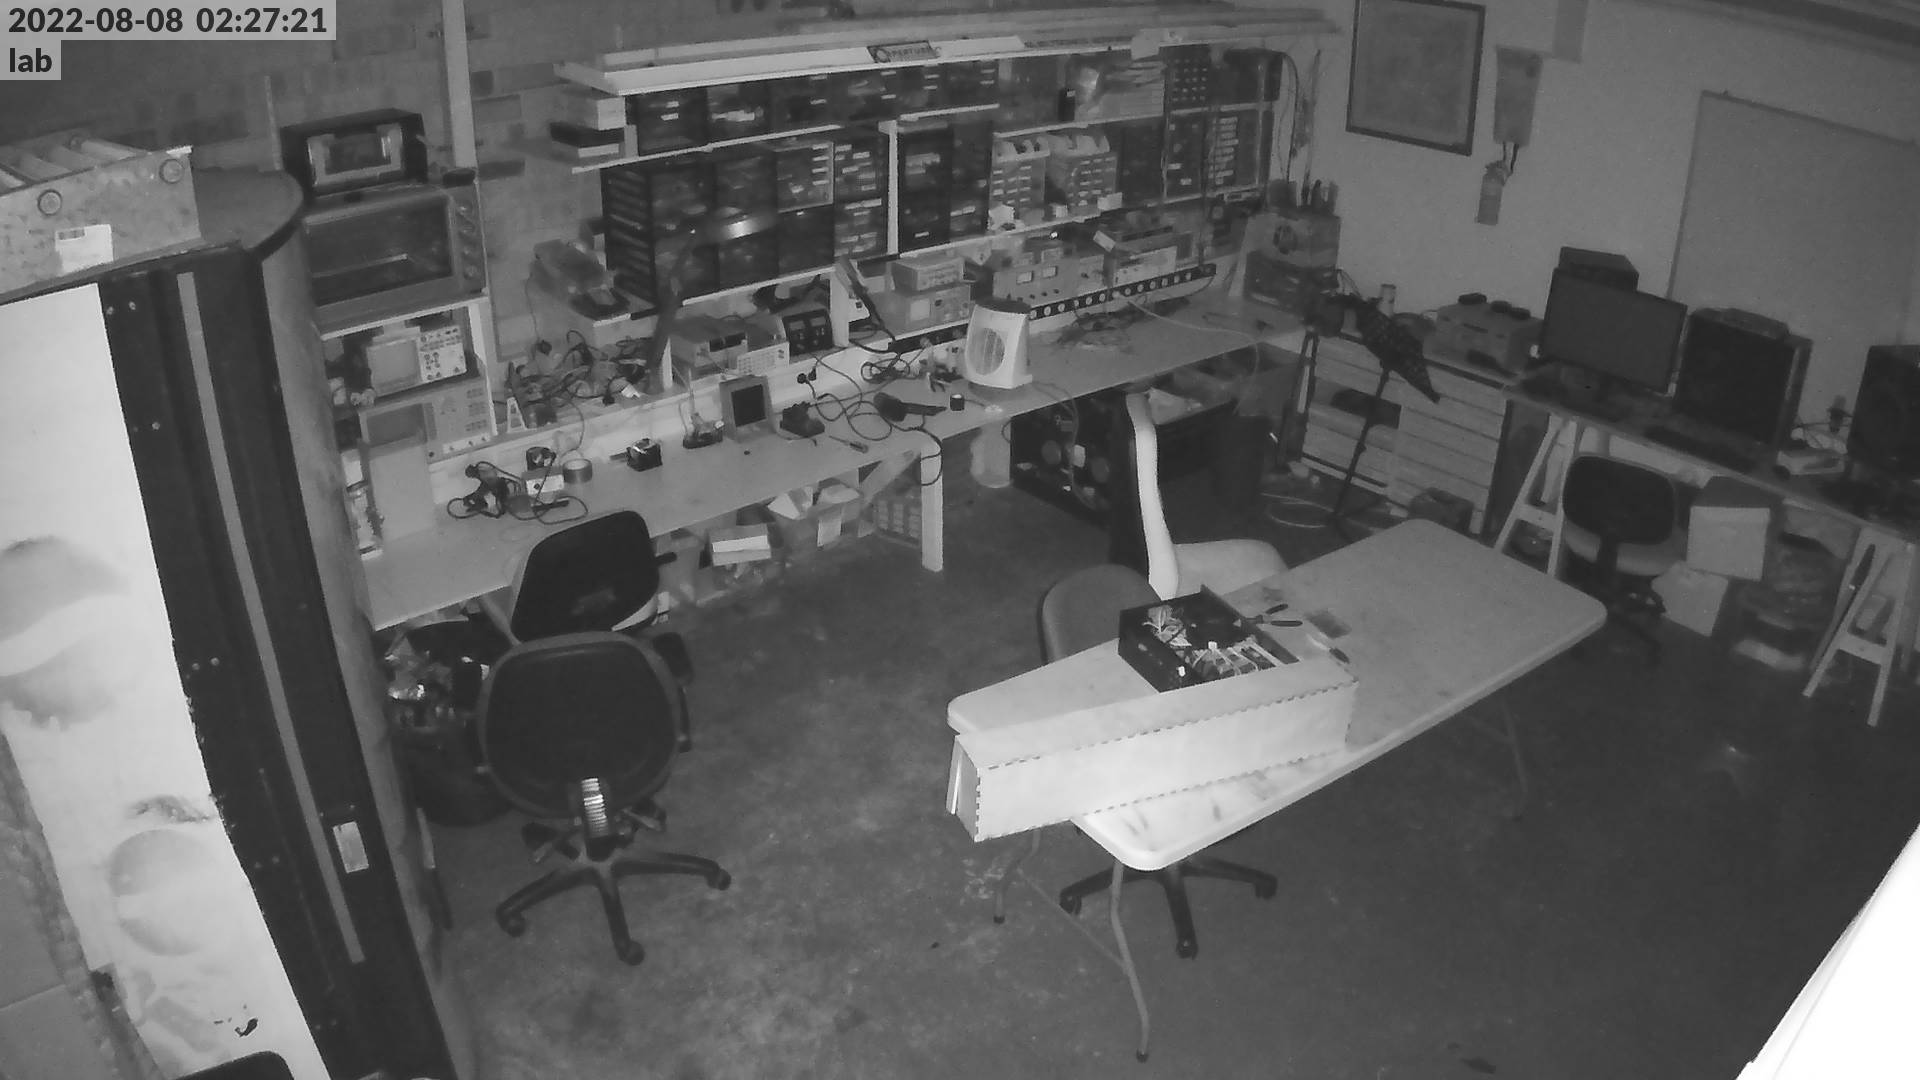 A view of the electronics lab from the foyer door